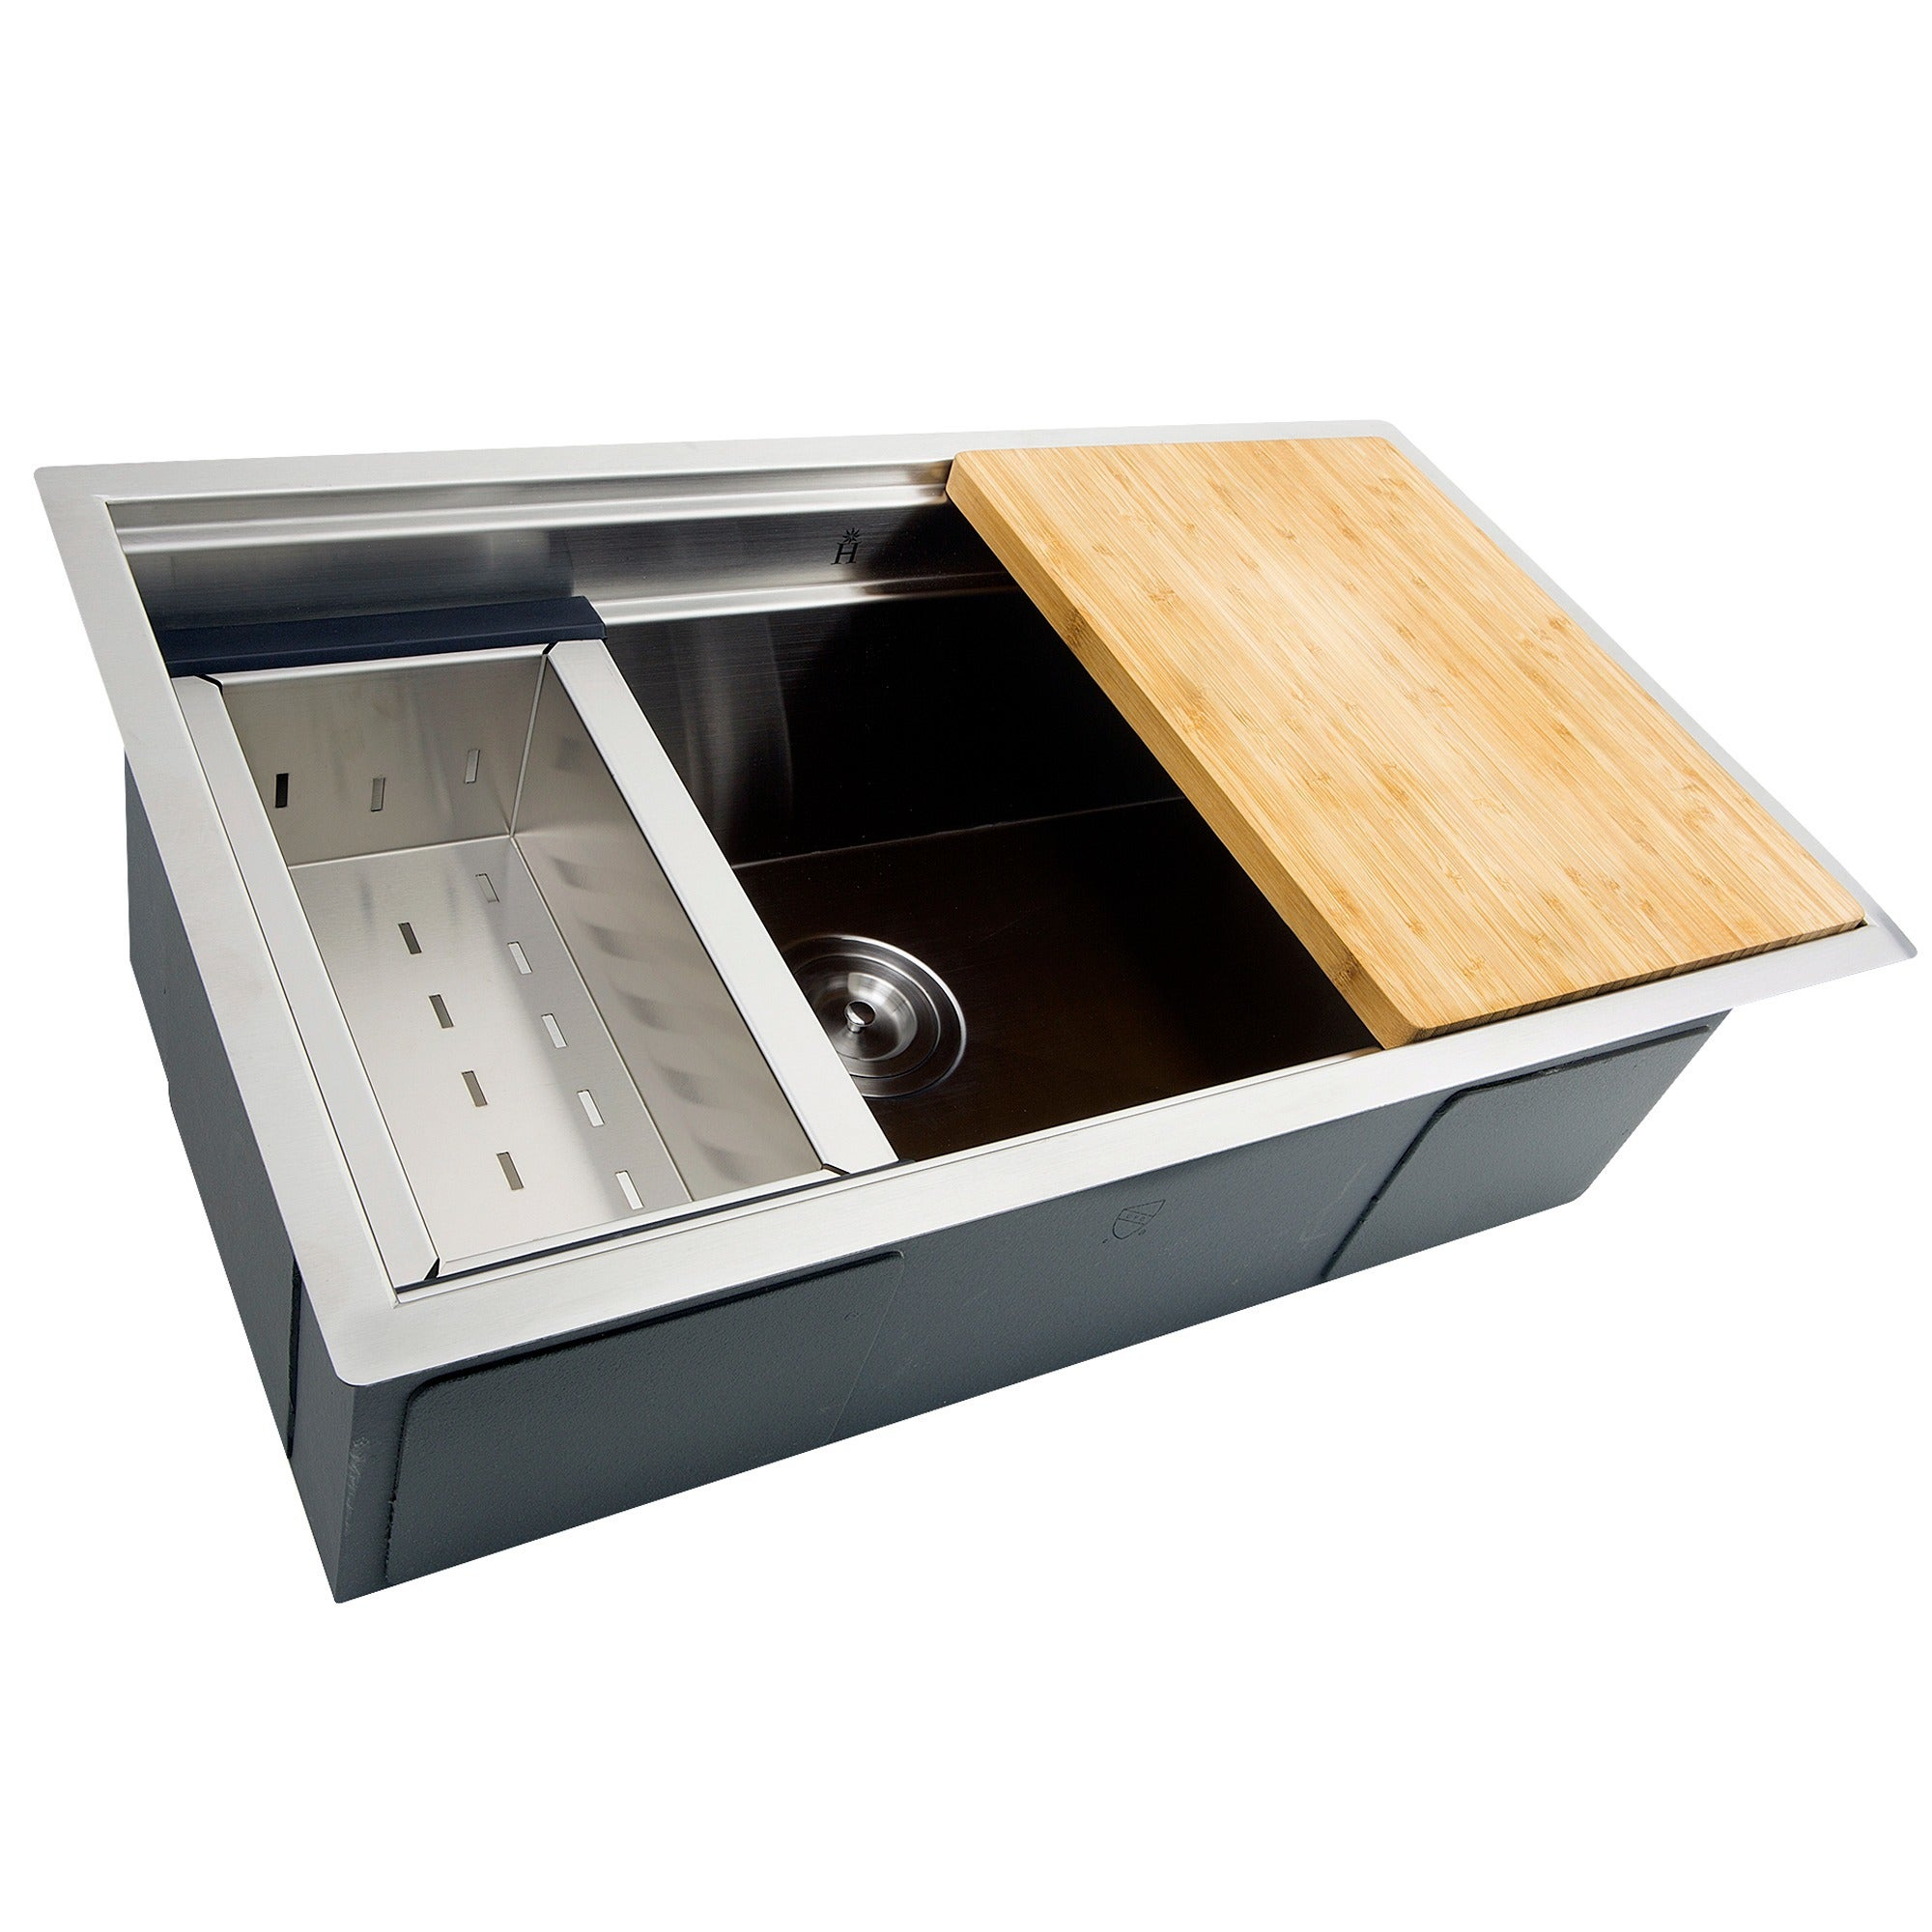 kitchen stainless com nsf steel commercial dp gridmann amazon sink compartment underbar sinks